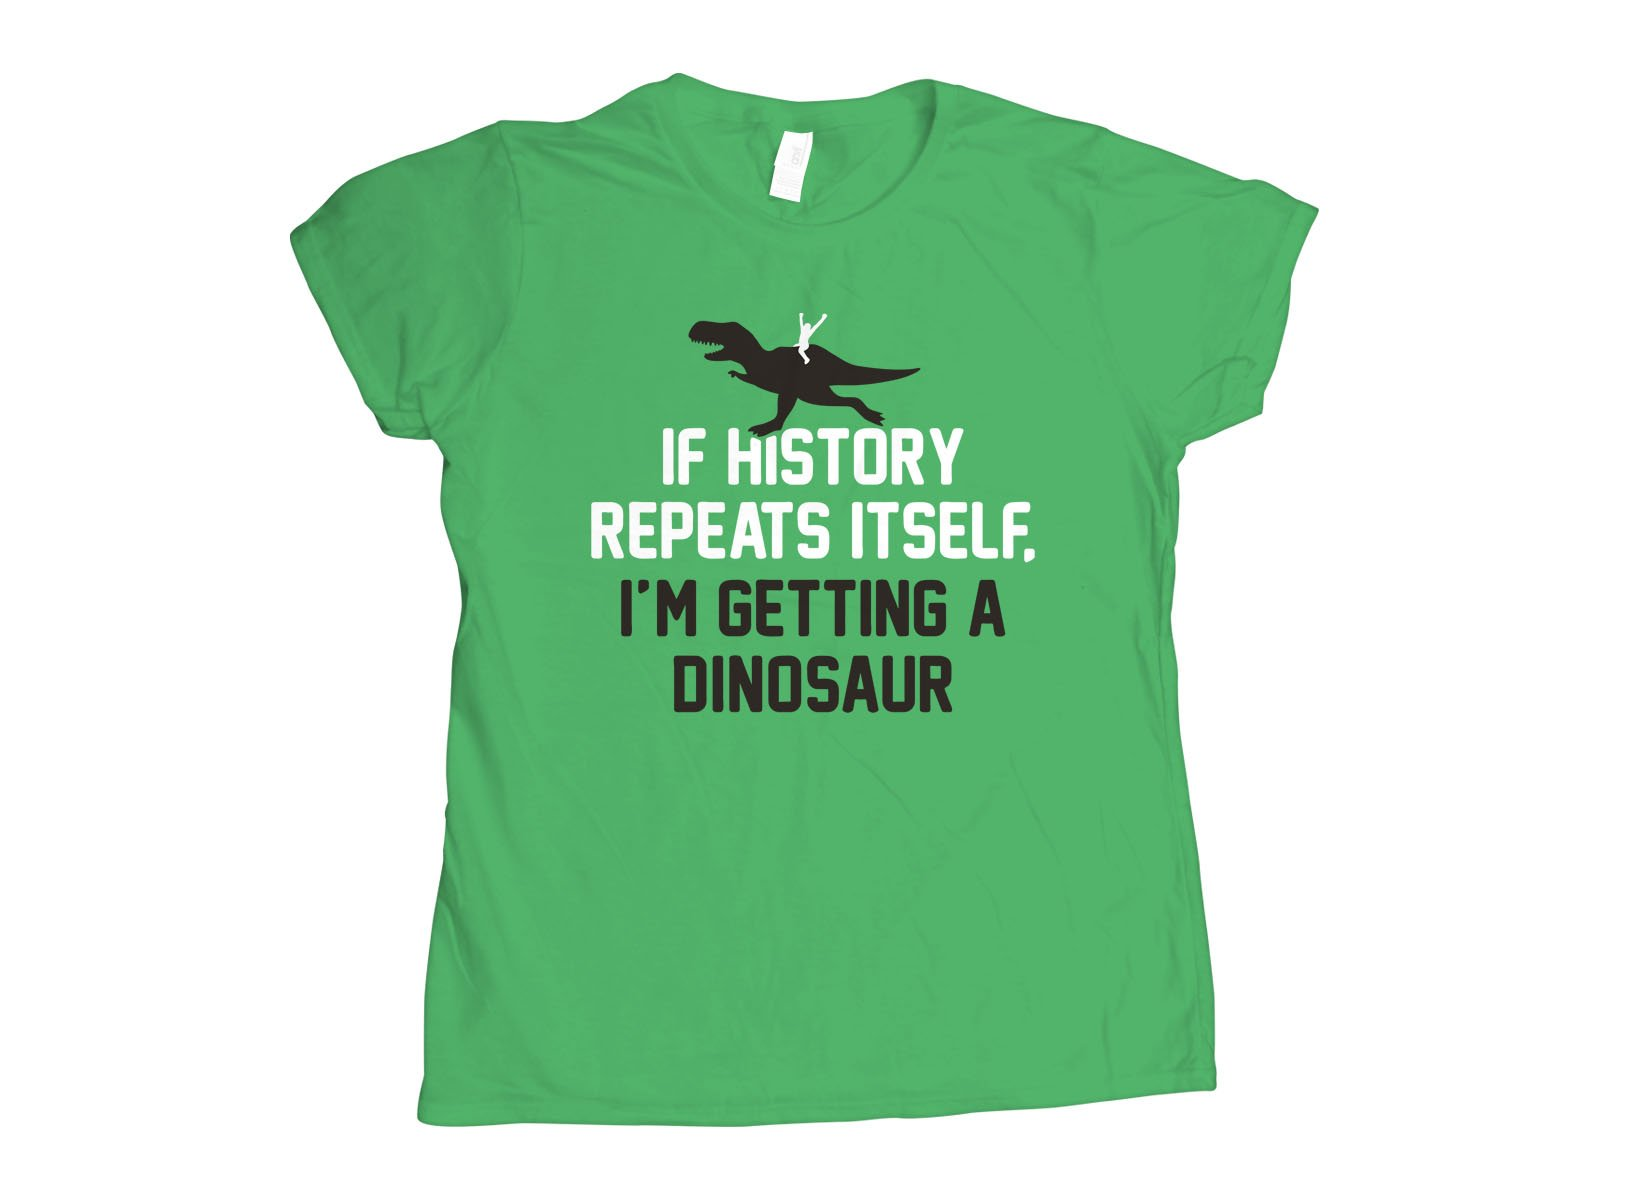 If History Repeats Itself, I'm Getting A Dinosaur on Womens T-Shirt